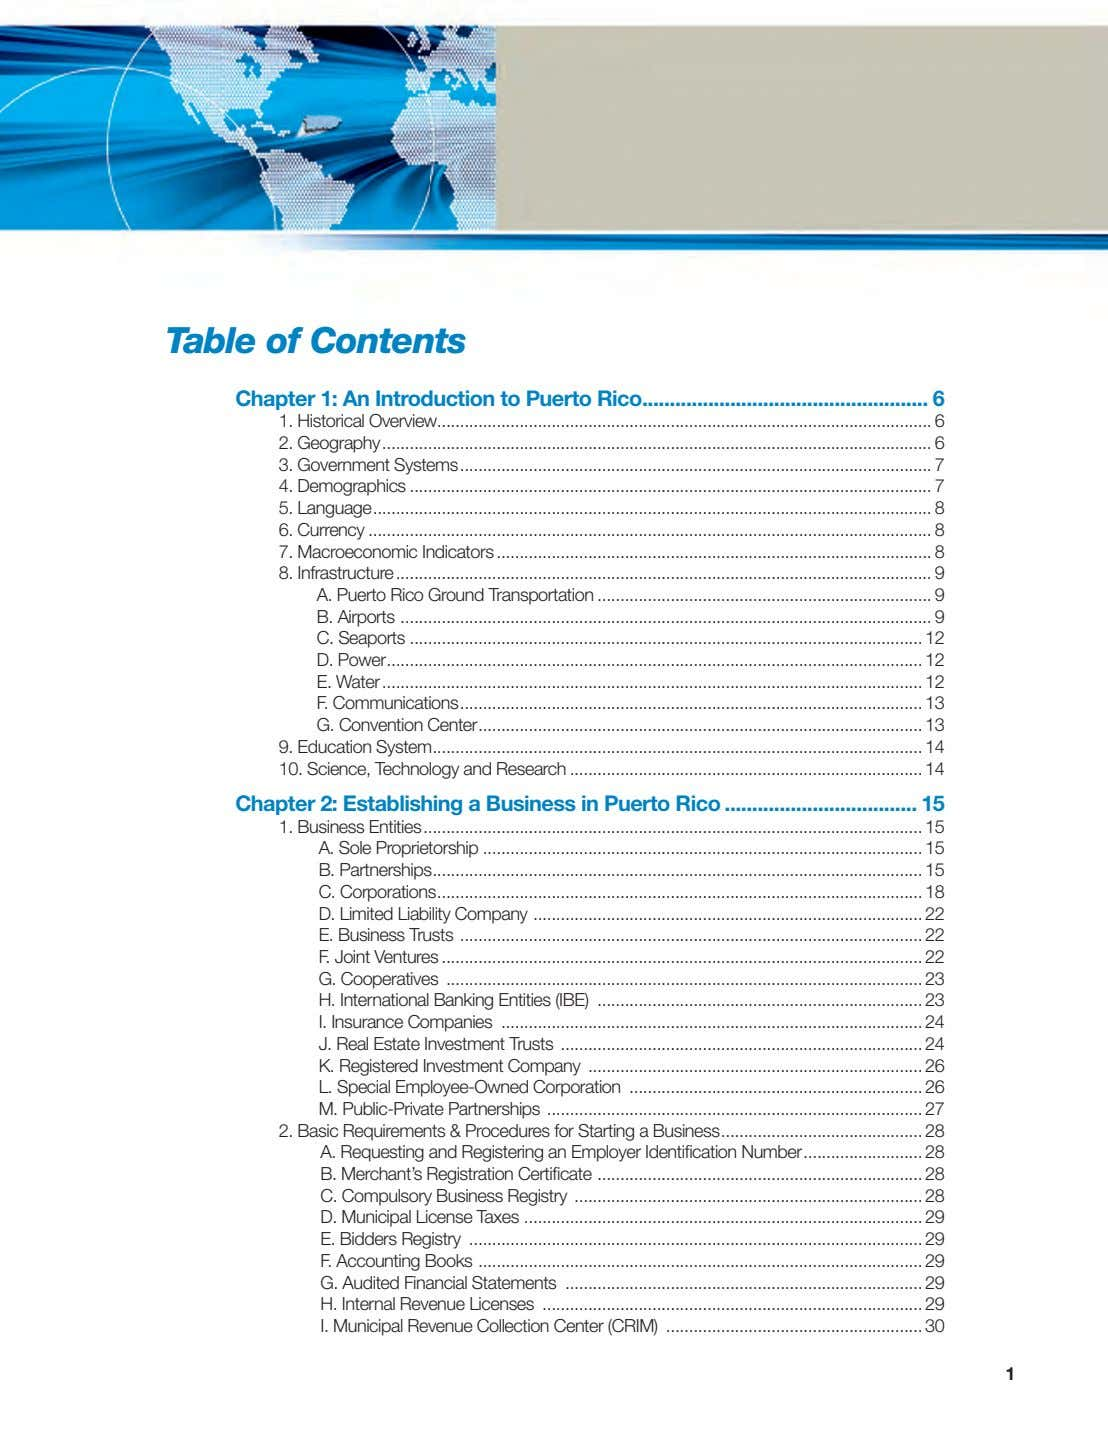 Table of Contents Chapter 1: An Introduction to Puerto Rico 6 1. Historical Overview 6